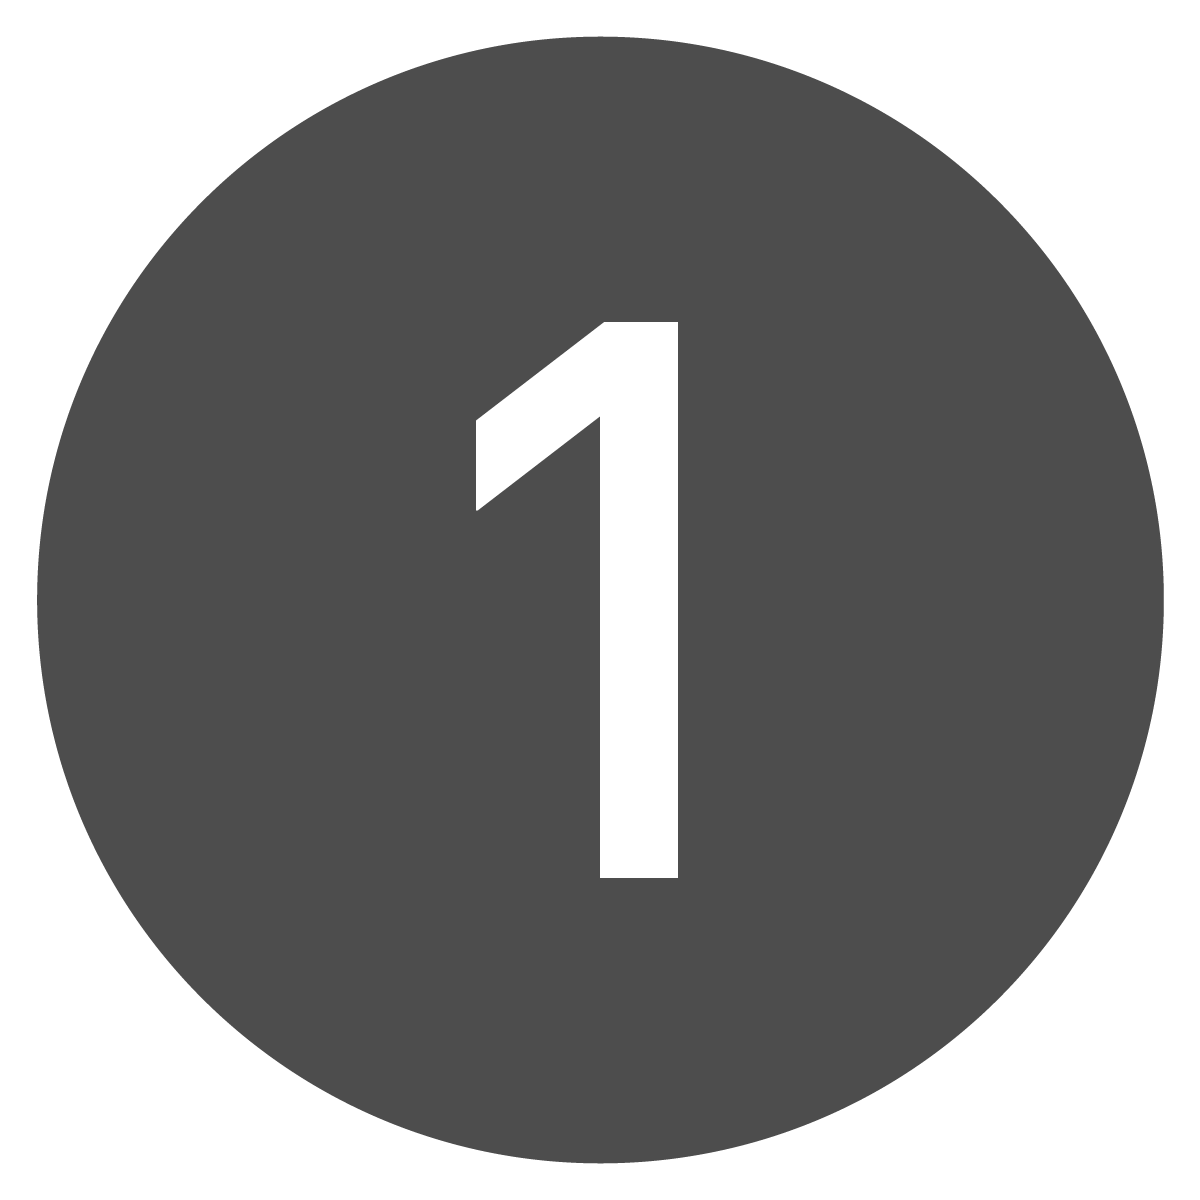 Circle button of the number one.